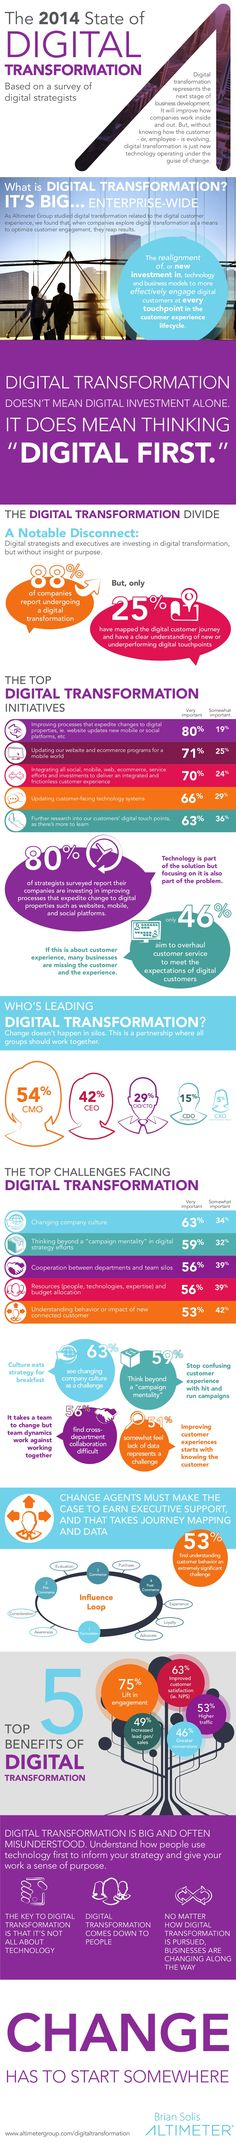 The 2014 State of Digital Transformation #infographic #Business #Marketing